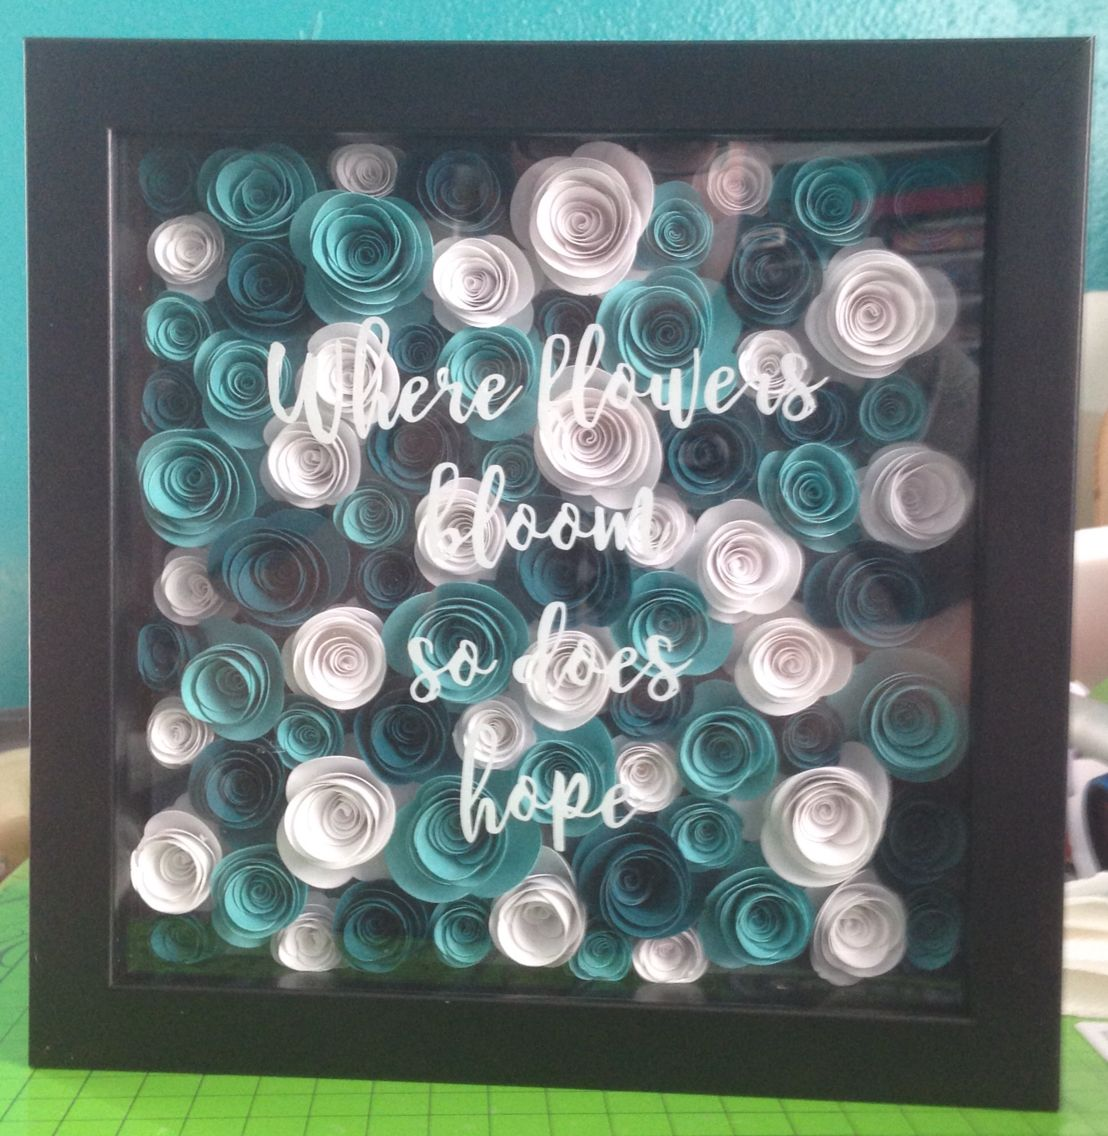 Paper flowers shadow box | My Projects | Pinterest | Cuadro, Papel y ...